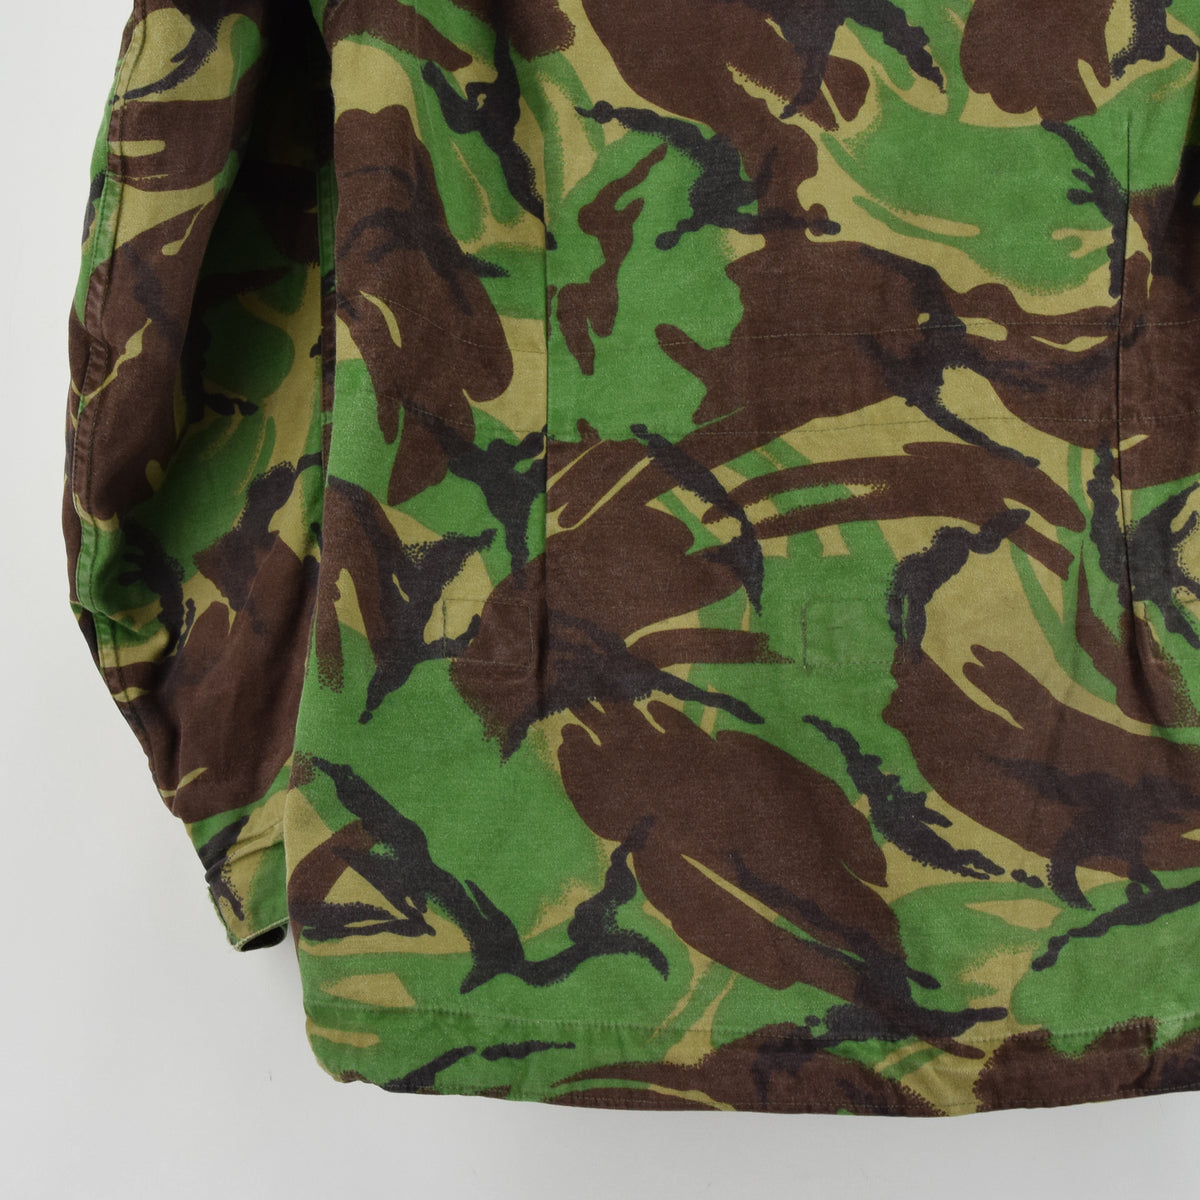 Vintage 80s British Aircrew RAF Combat Temperate MK 2 Camo Jacket M / L back hem